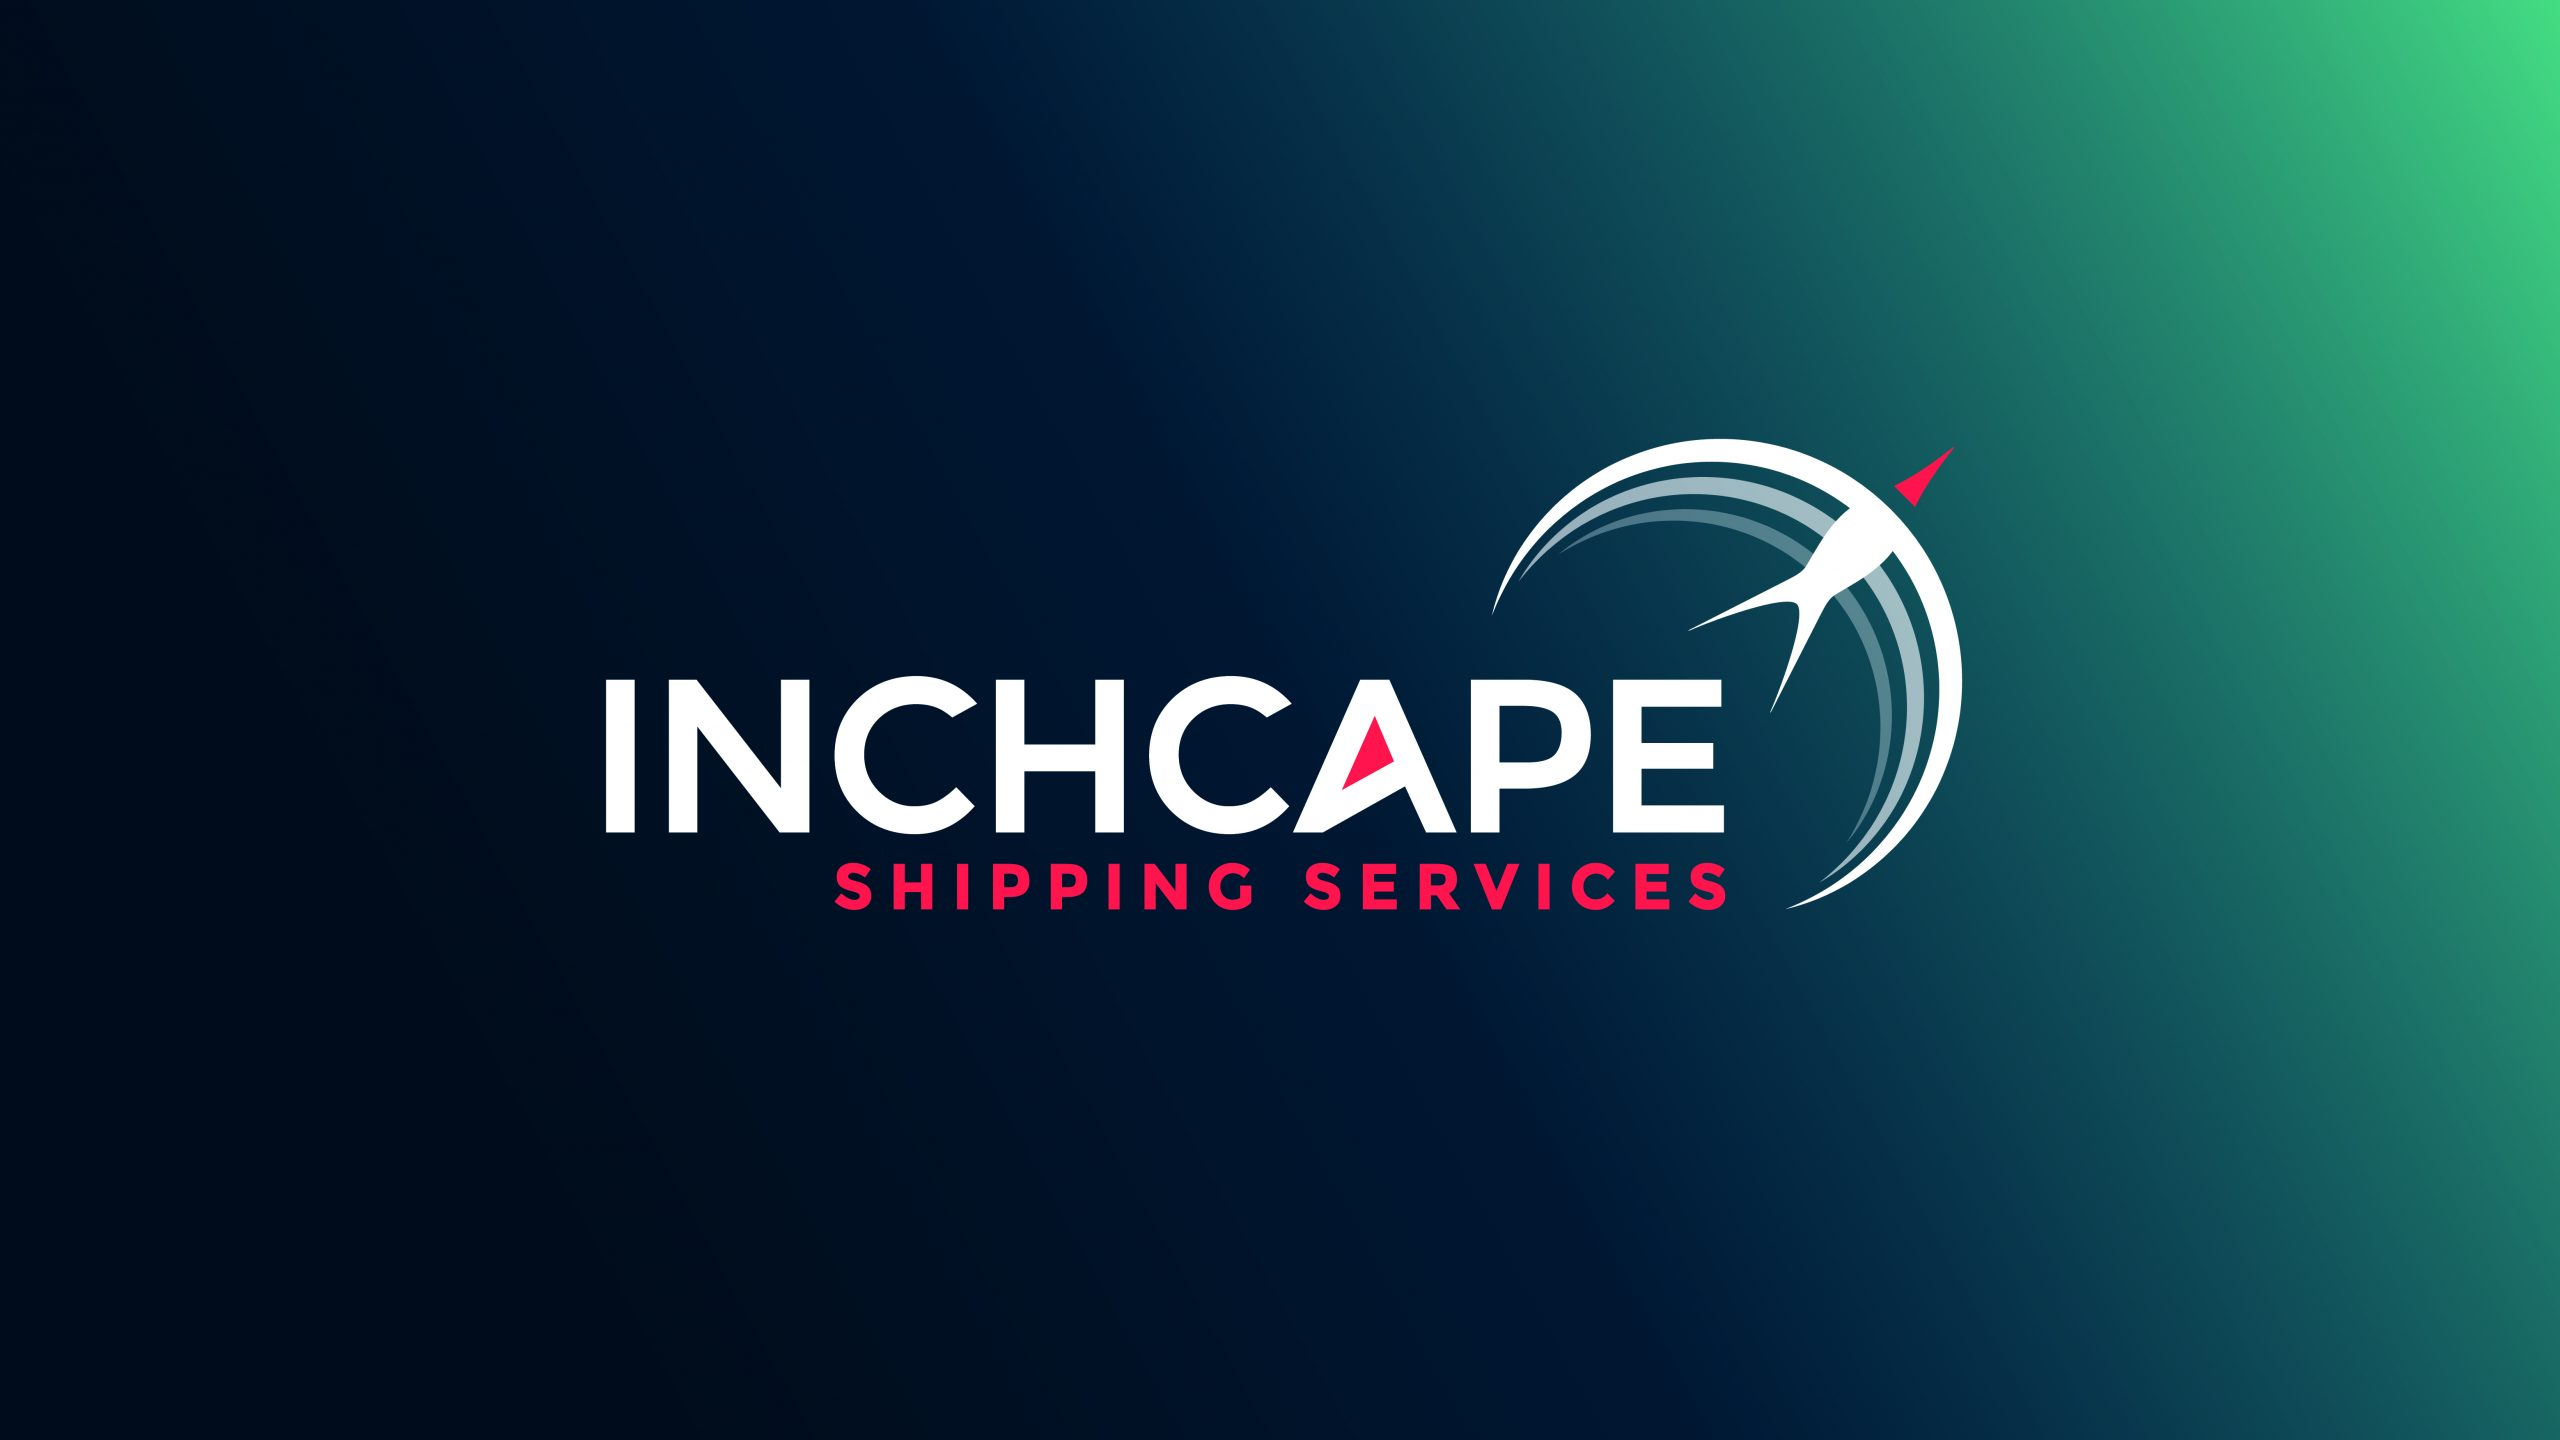 Inchcape Shipping Services (UK) Limited